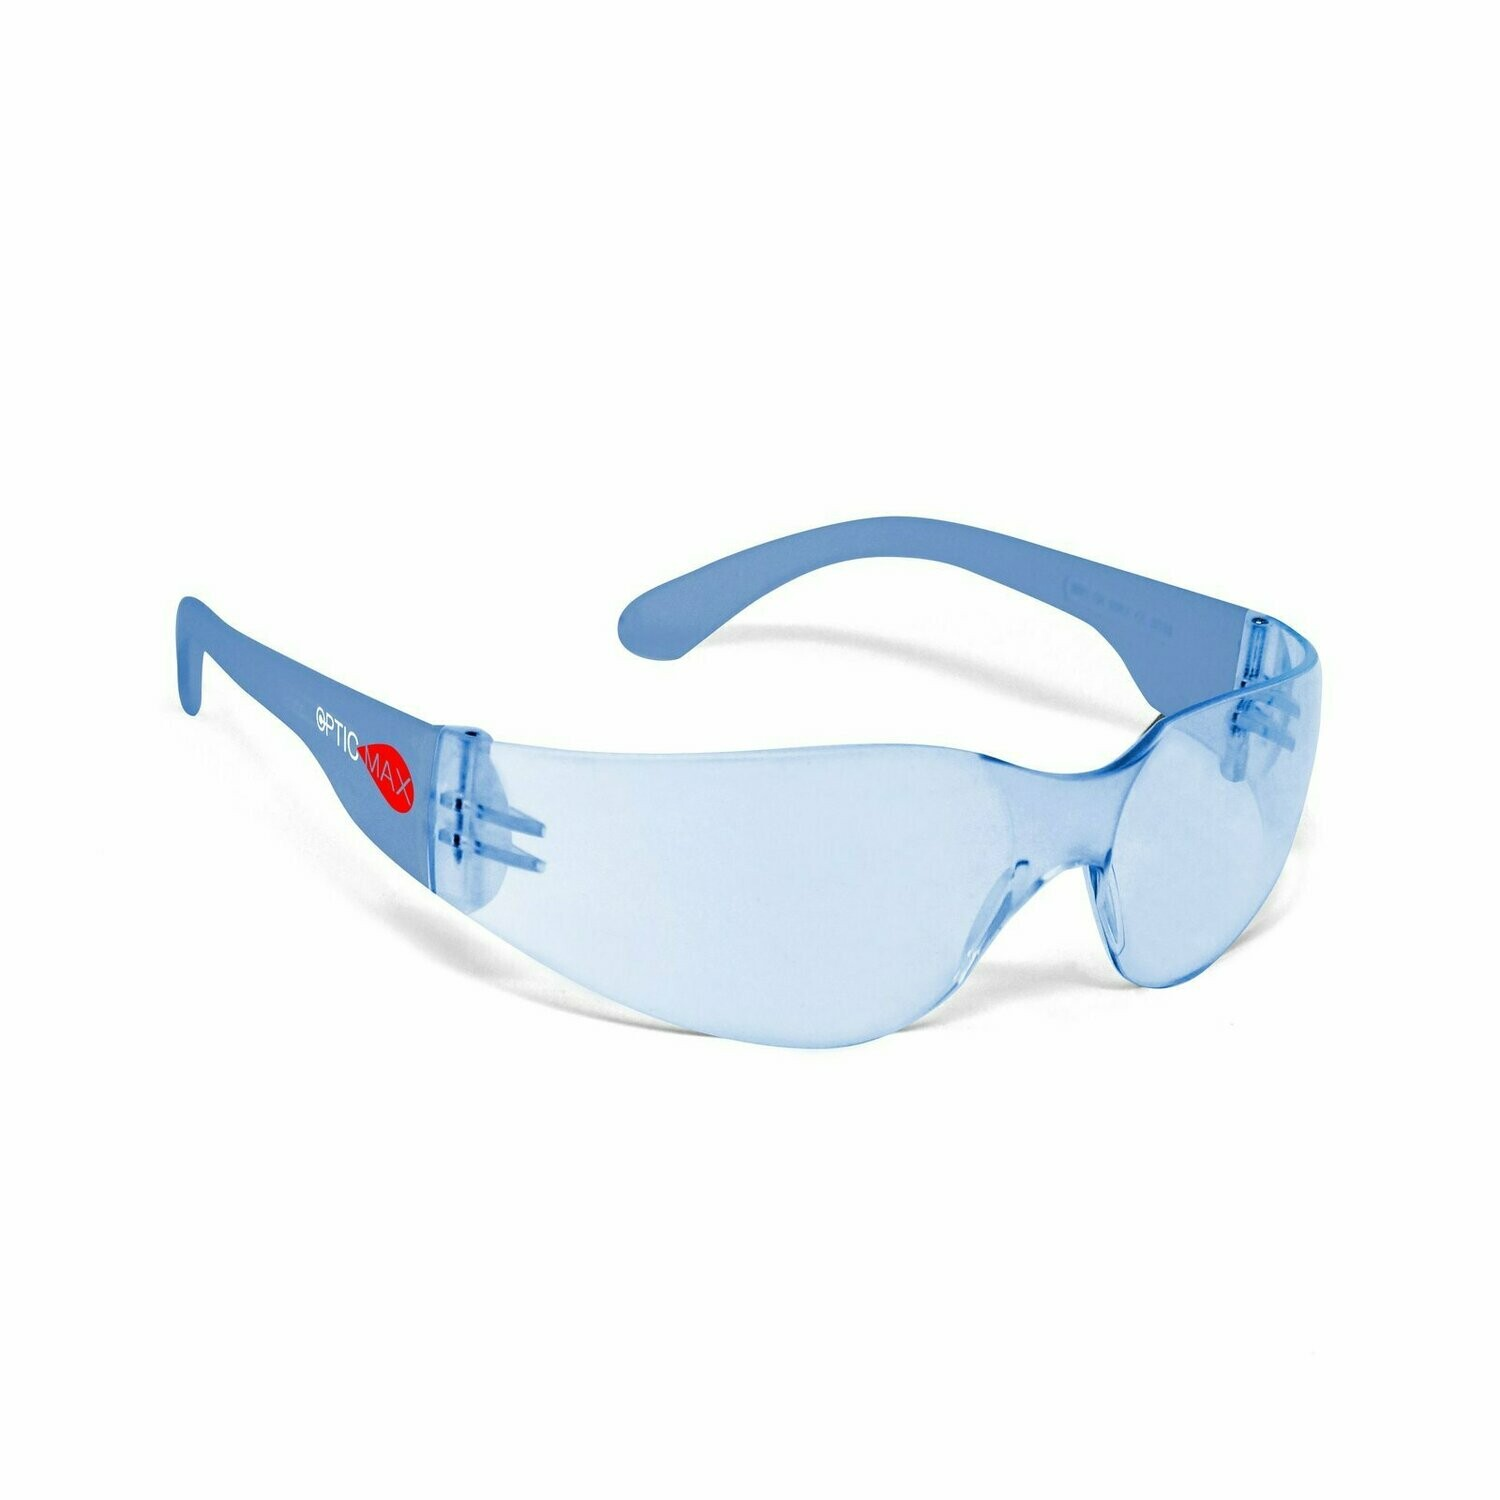 Optic Max Light Blue Lens (12 per pack)